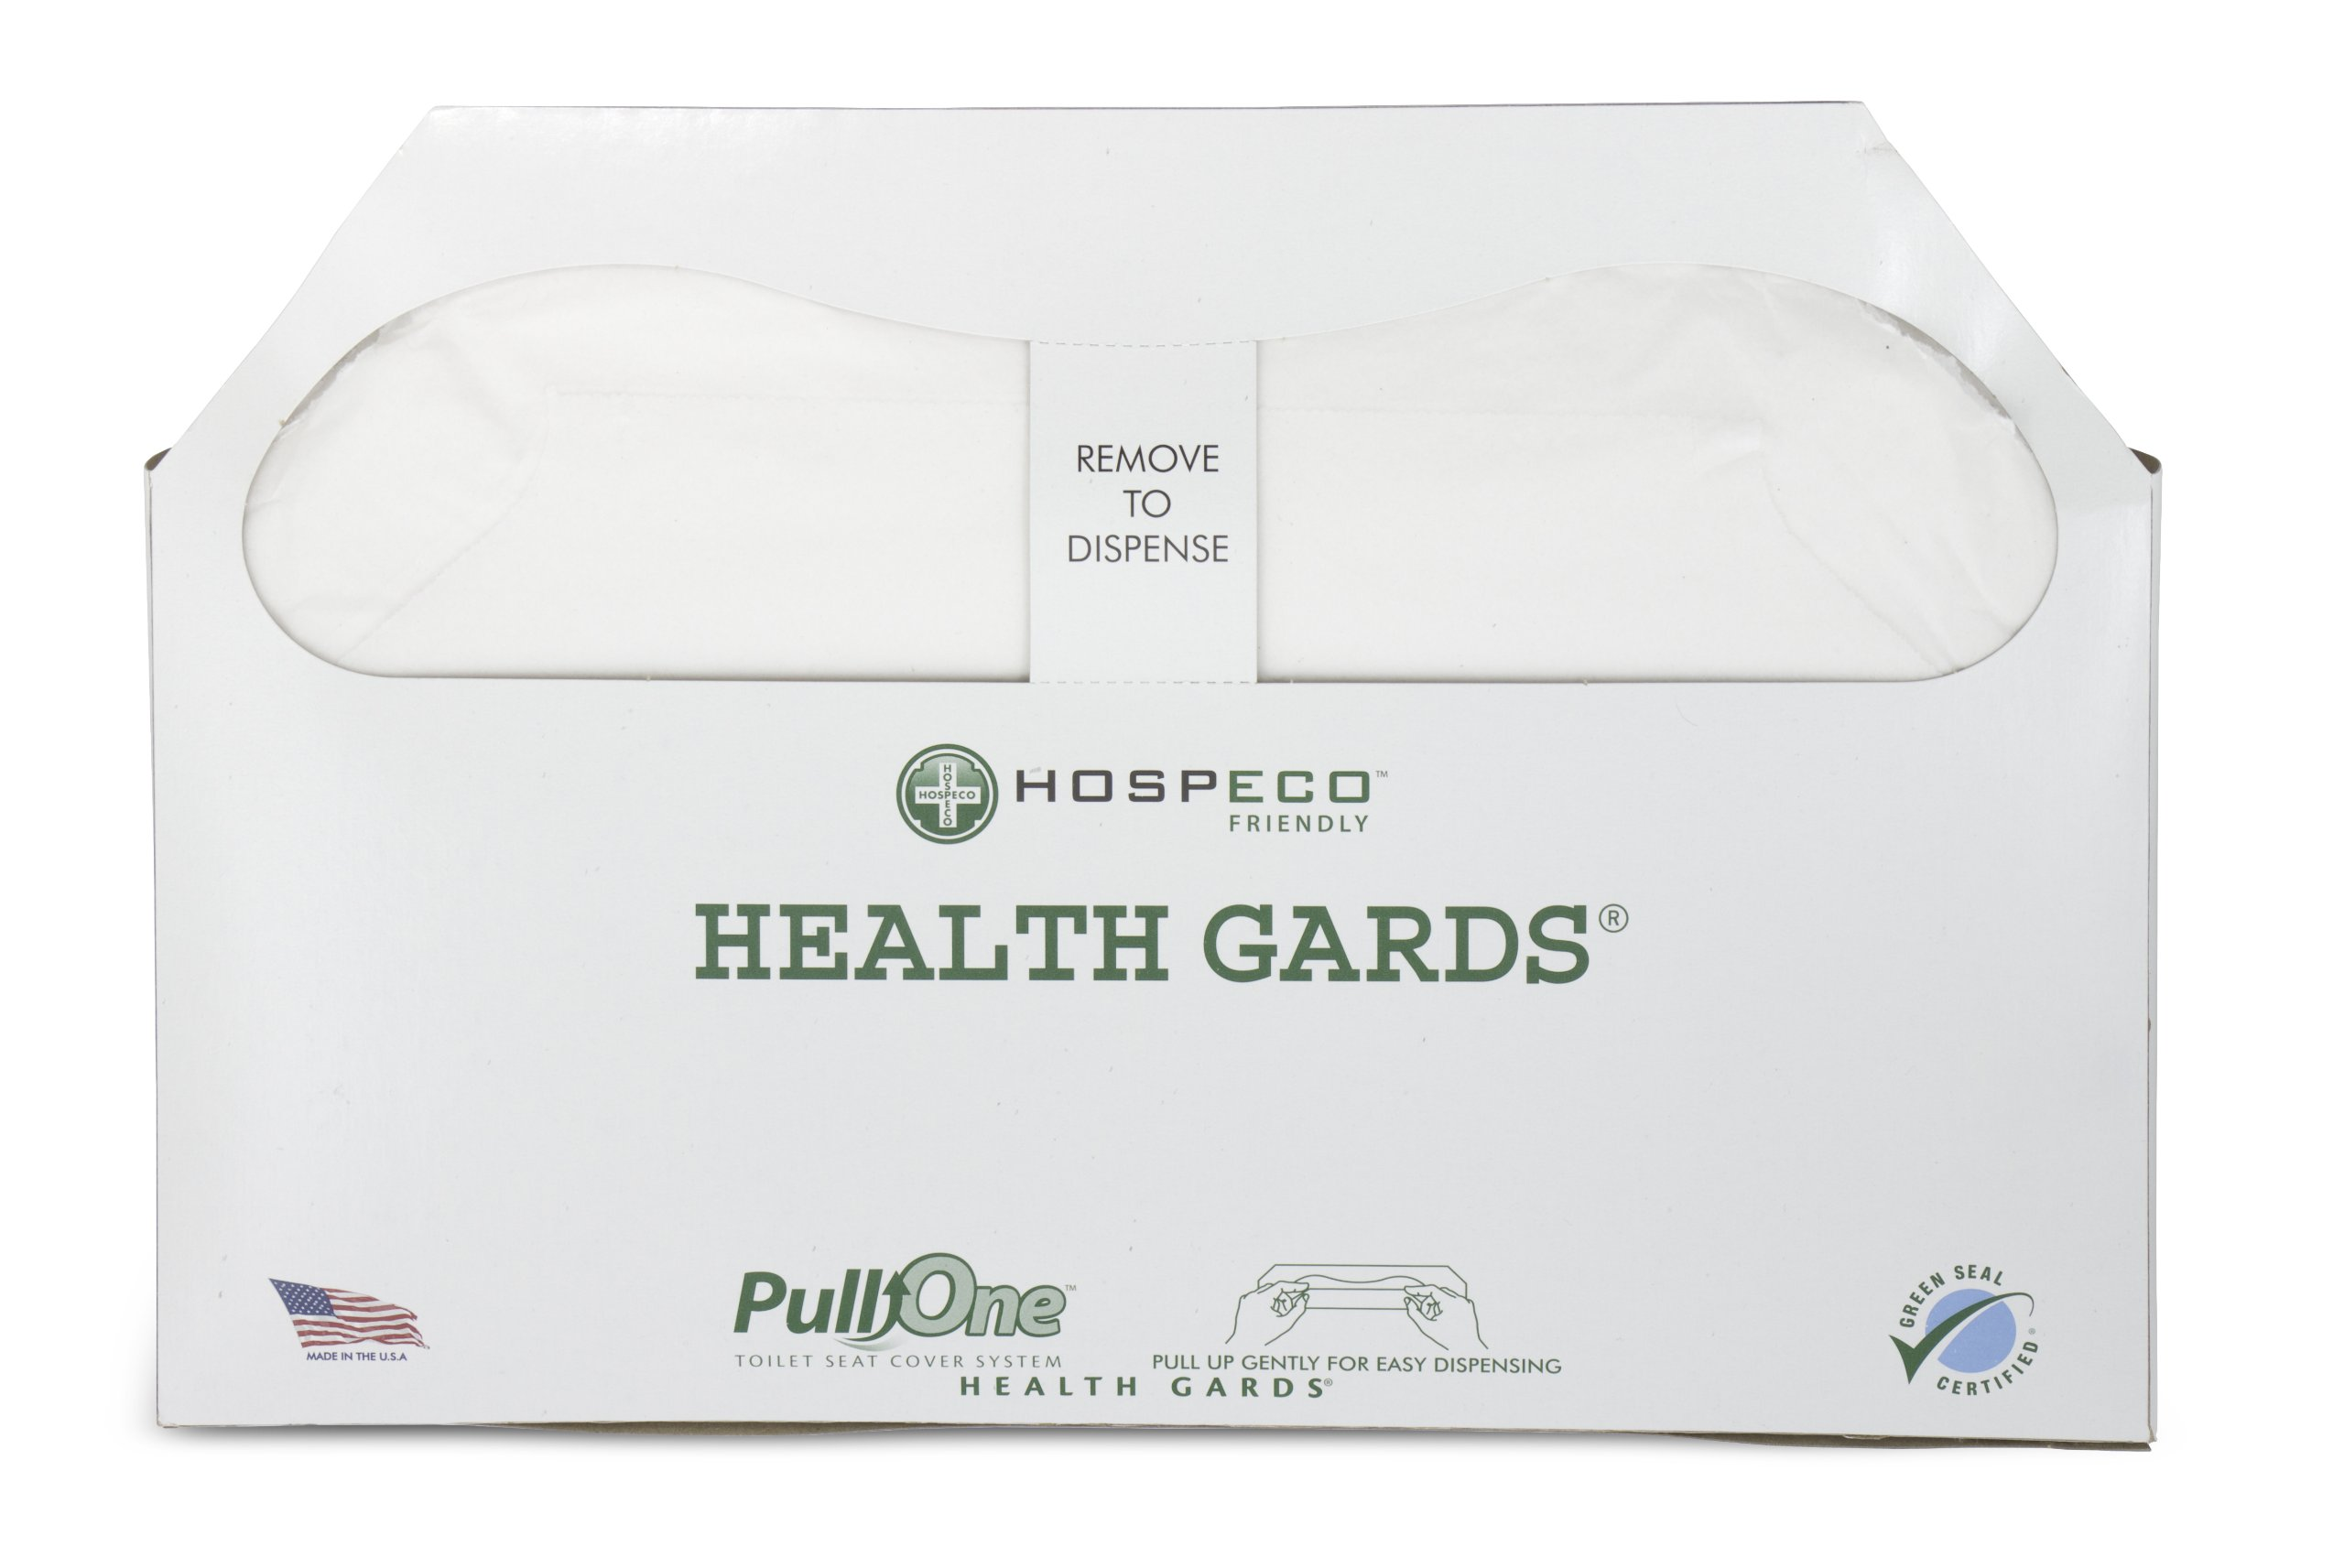 Health Gards PullOne Toilet Seat Covers HG3000B Count of 3000, (Pack of 5)